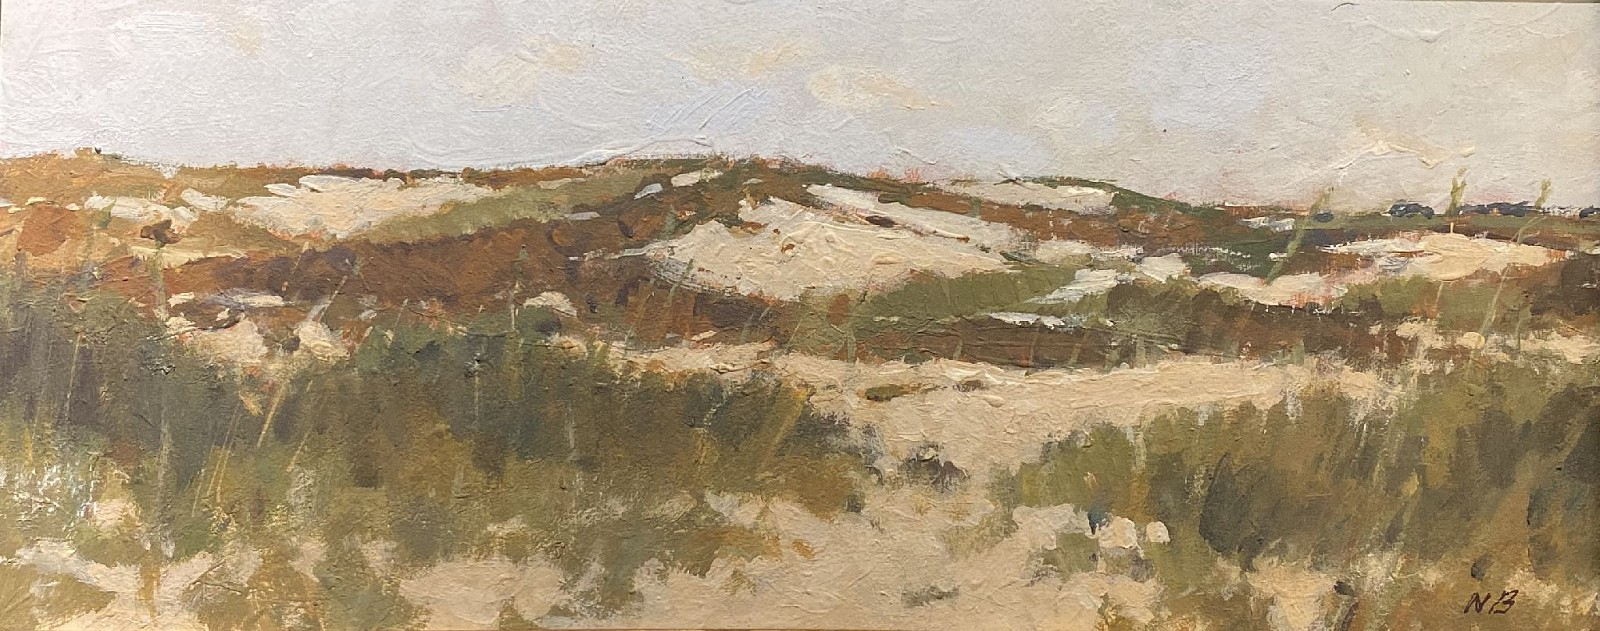 Nicholas Berger ,   Dune Path  ,  2020     oil on panel ,  4 3/4 x 11 in. (12.1 x 27.9 cm)     NB200505